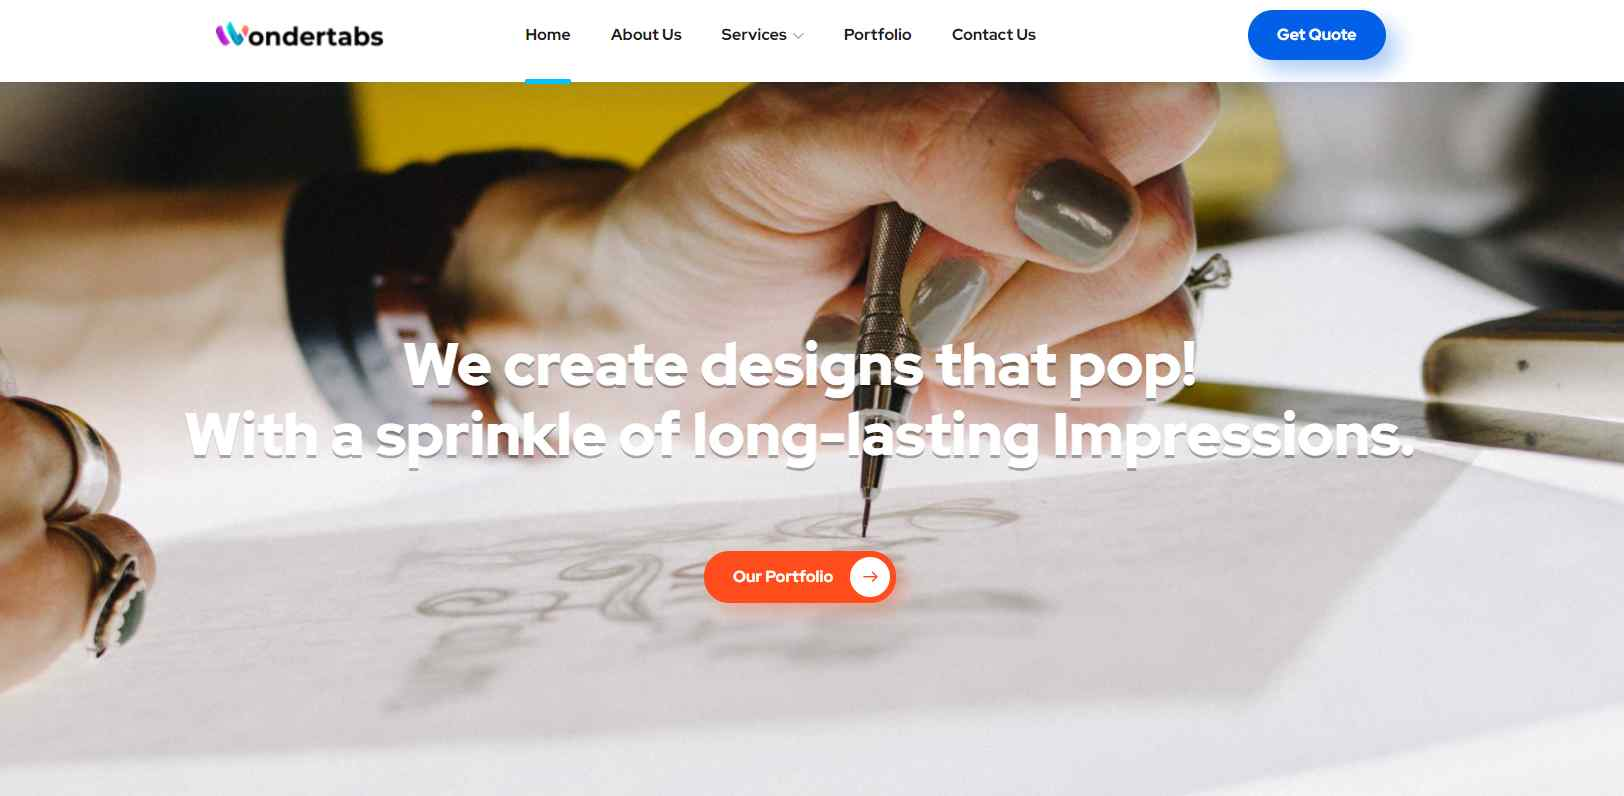 wonder tabs Top UX Design Service Providers in Singapore